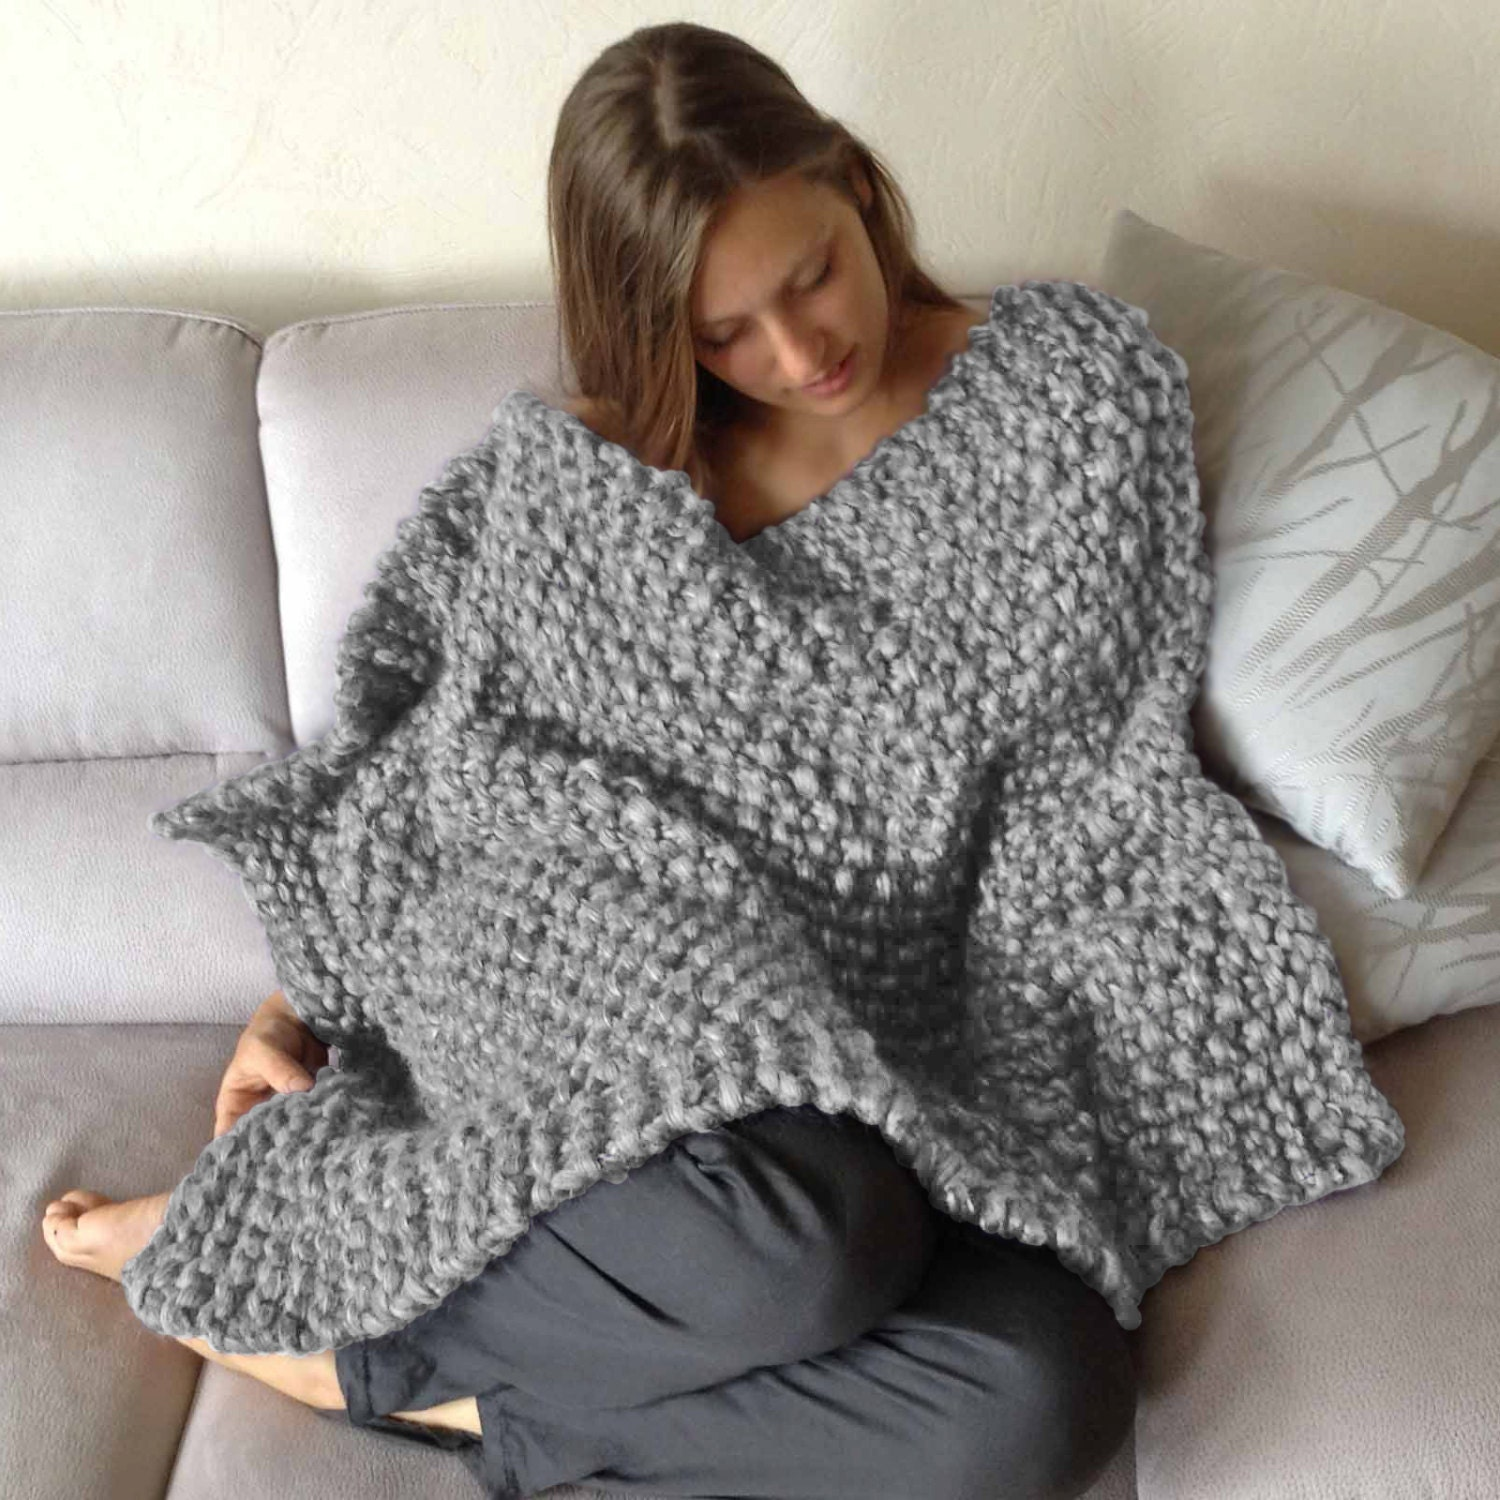 Knit Blanket Pattern Super Bulky : Chunky Wool Blanket KNITTING KIT. Super Bulky Merino Tencel